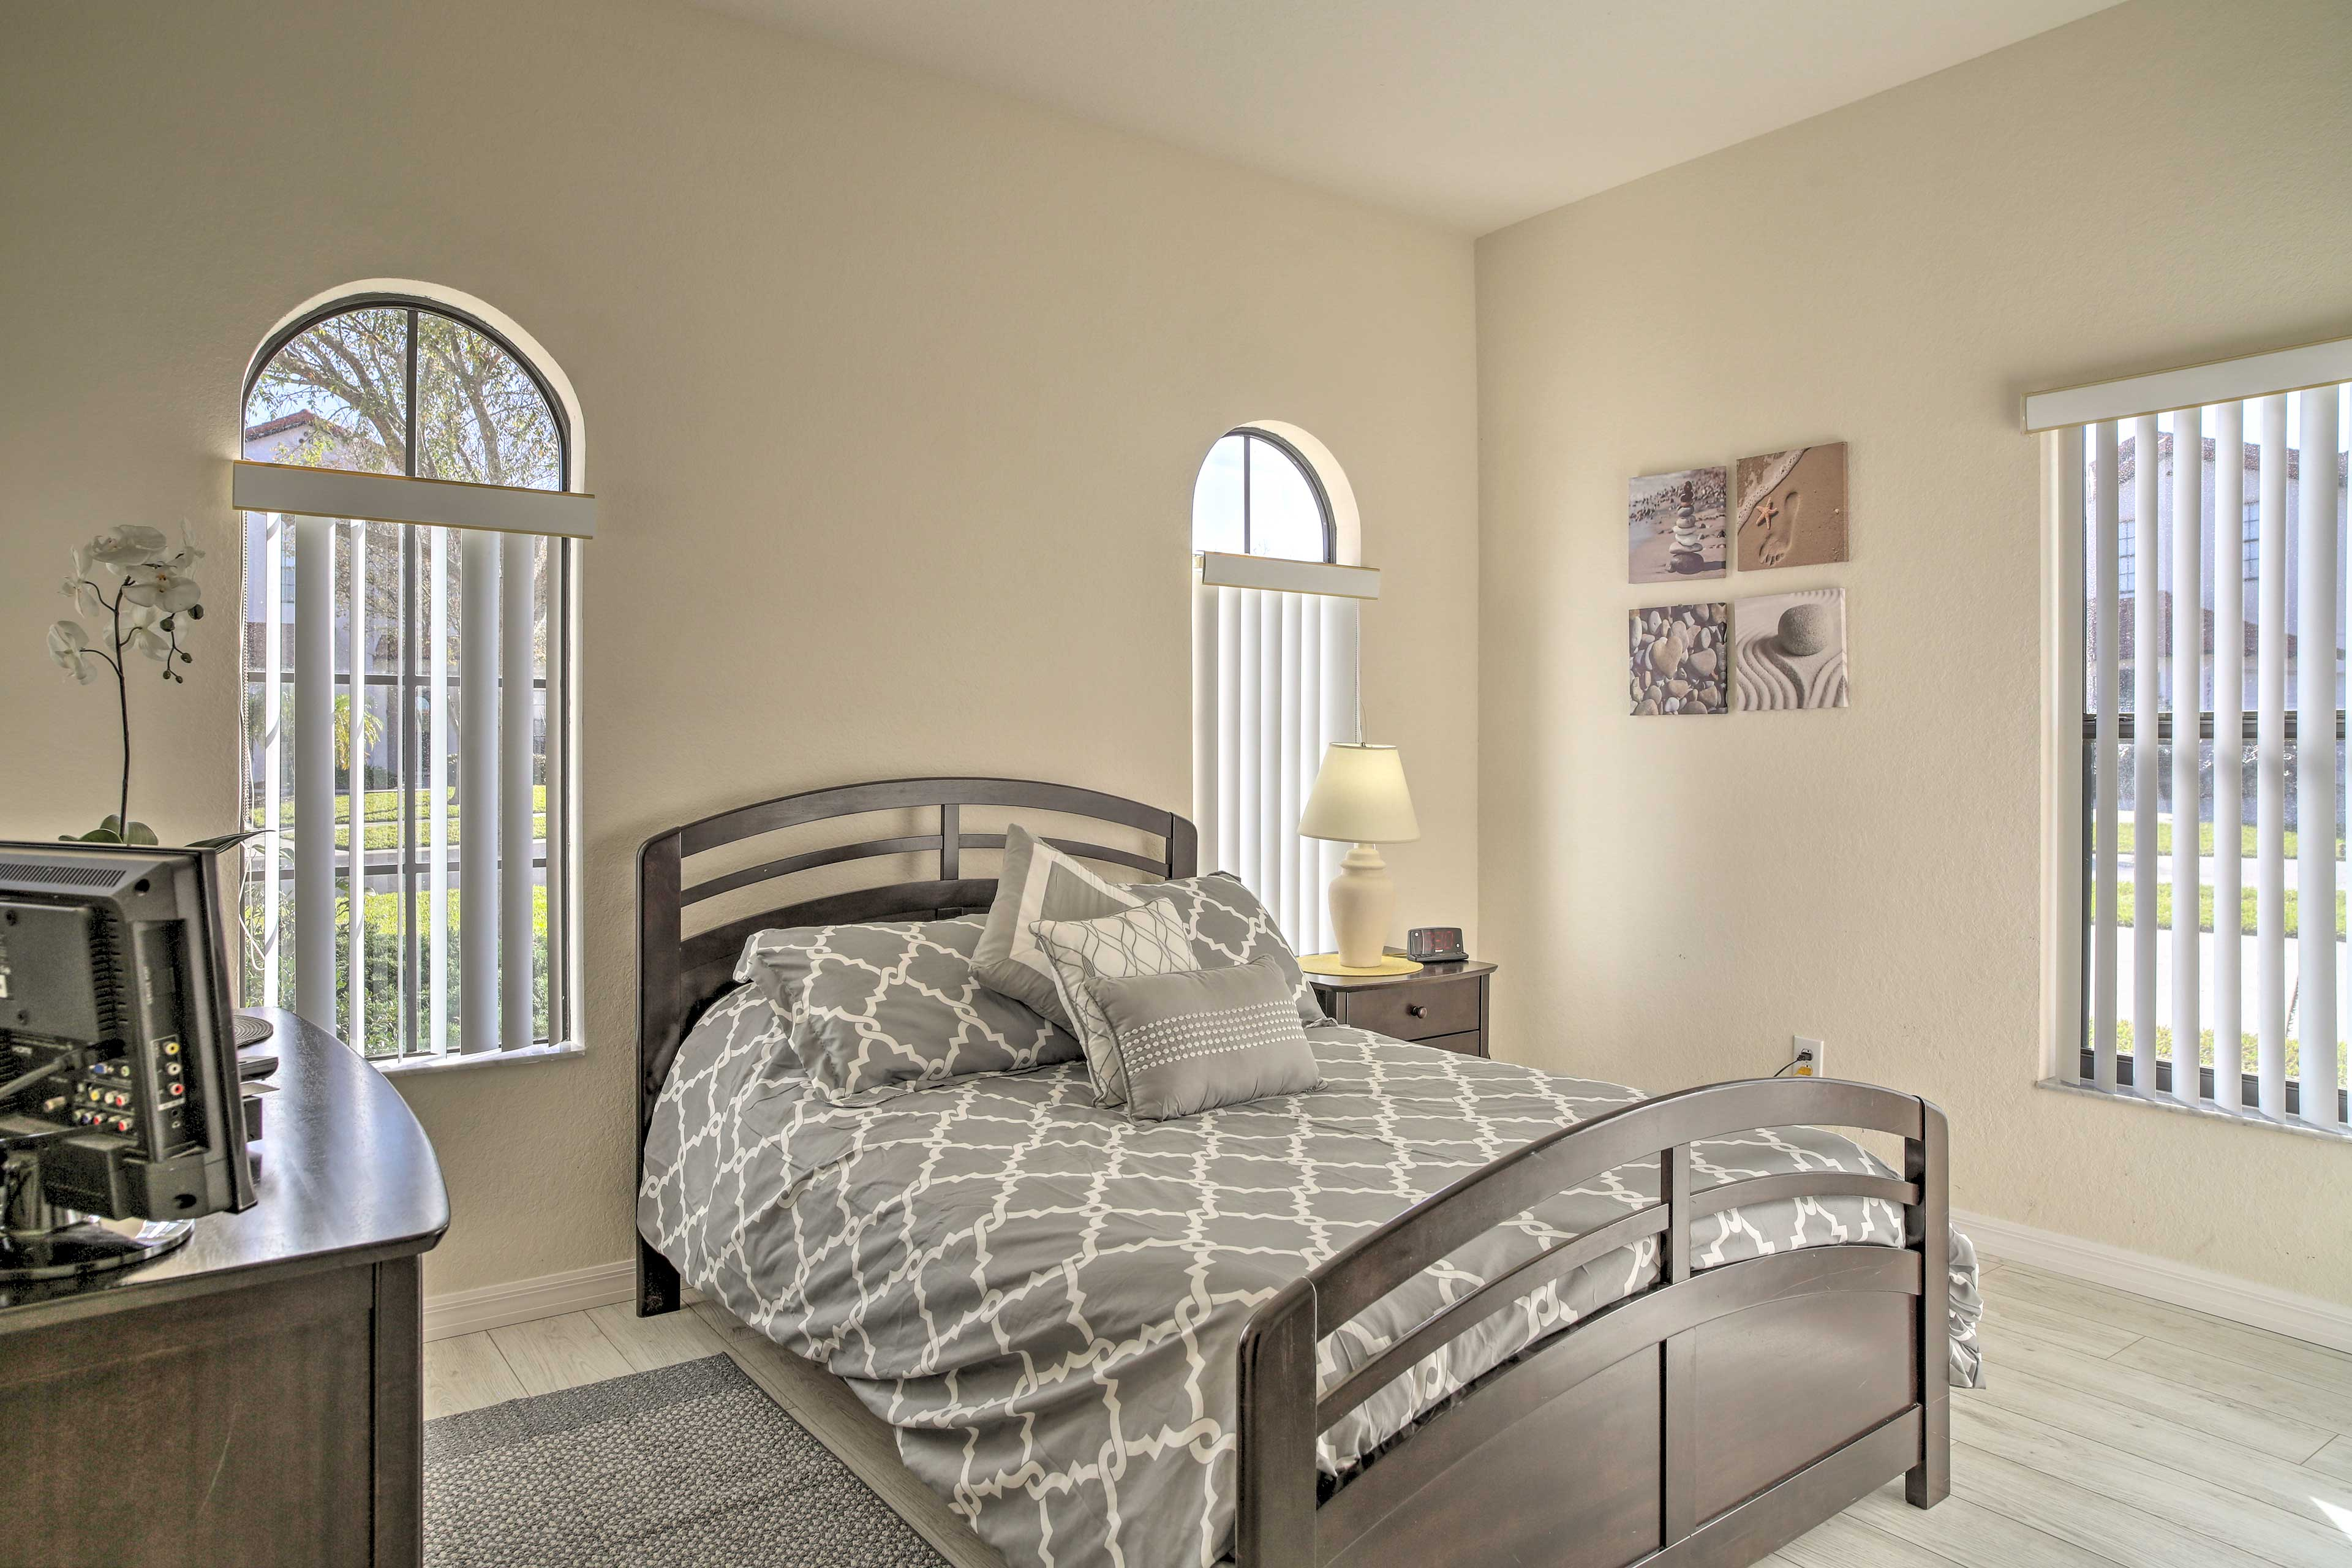 This full-sized bed guarantees many great nights of sleep.